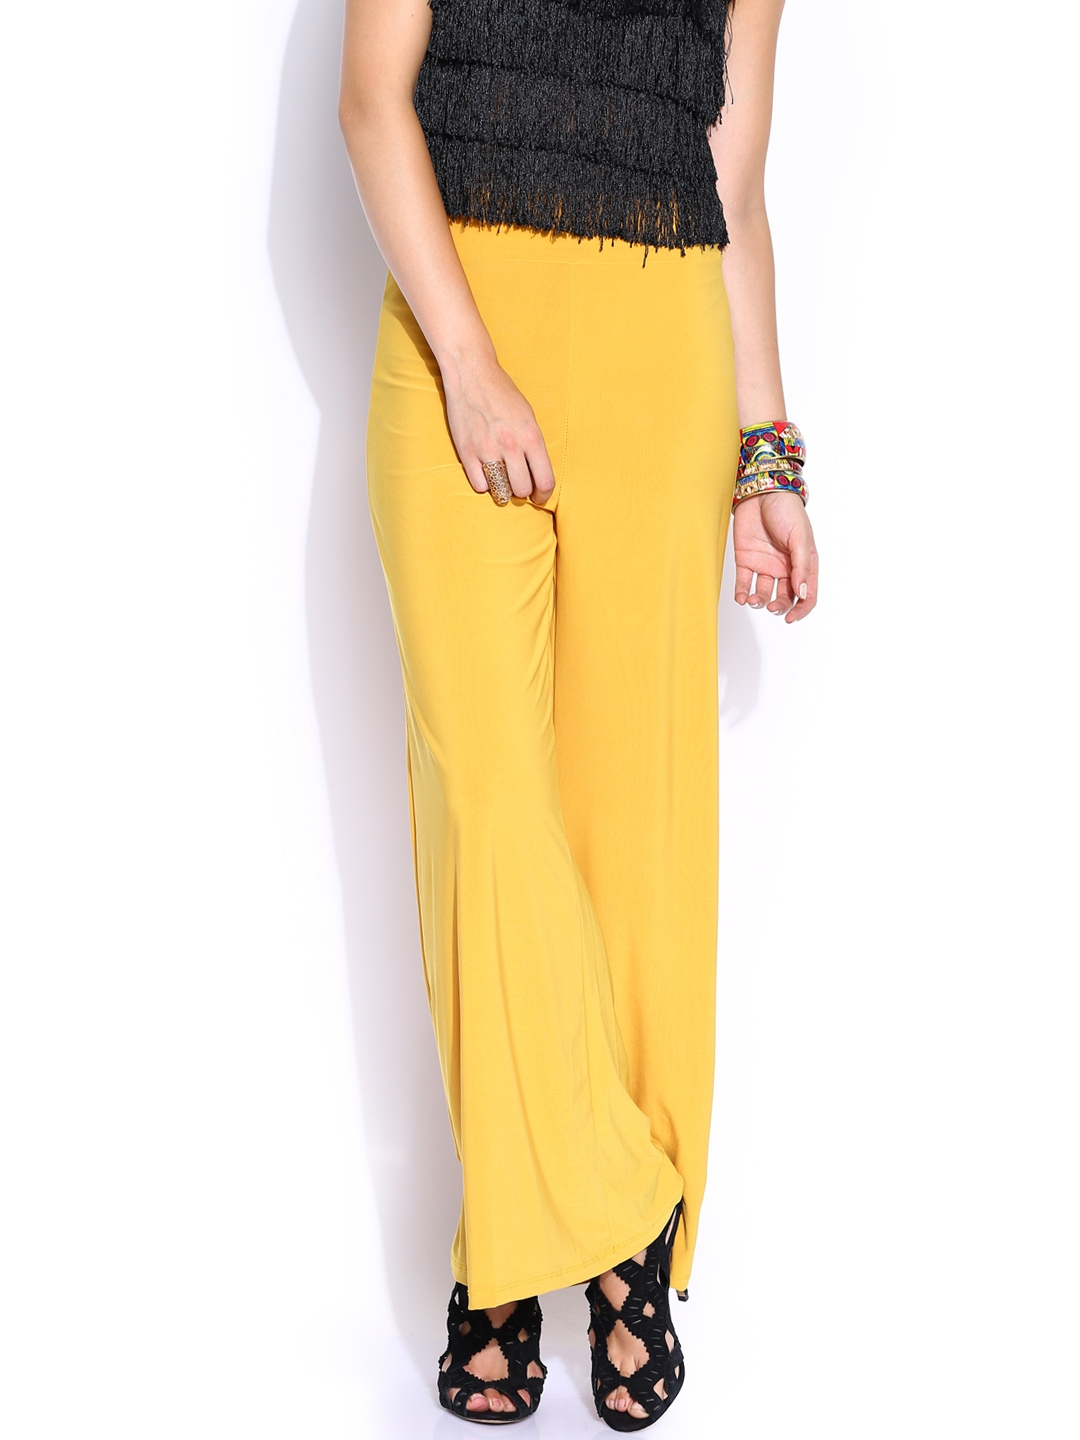 Awesome  Piana Women39s Mustard Yellow Cotton 39Dafne Caracas39 Straight